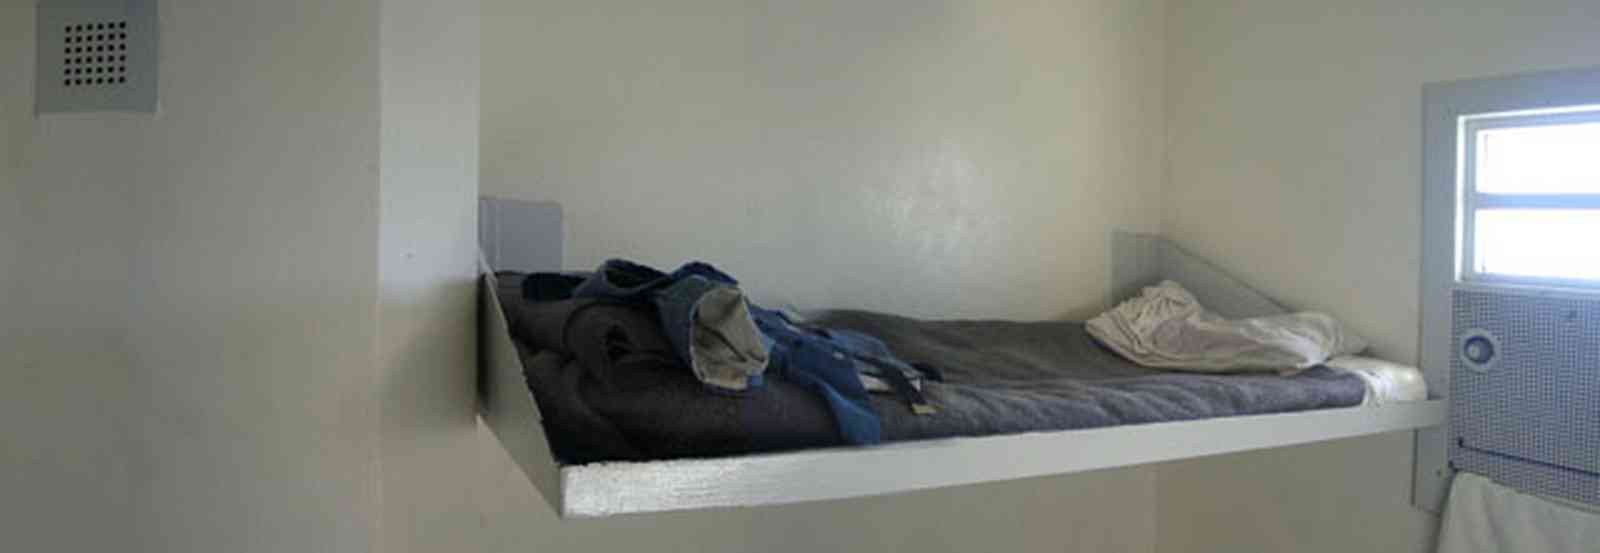 Century:-Prison_29.jpg:  prison cell, bunk, housing units, compound, security, century